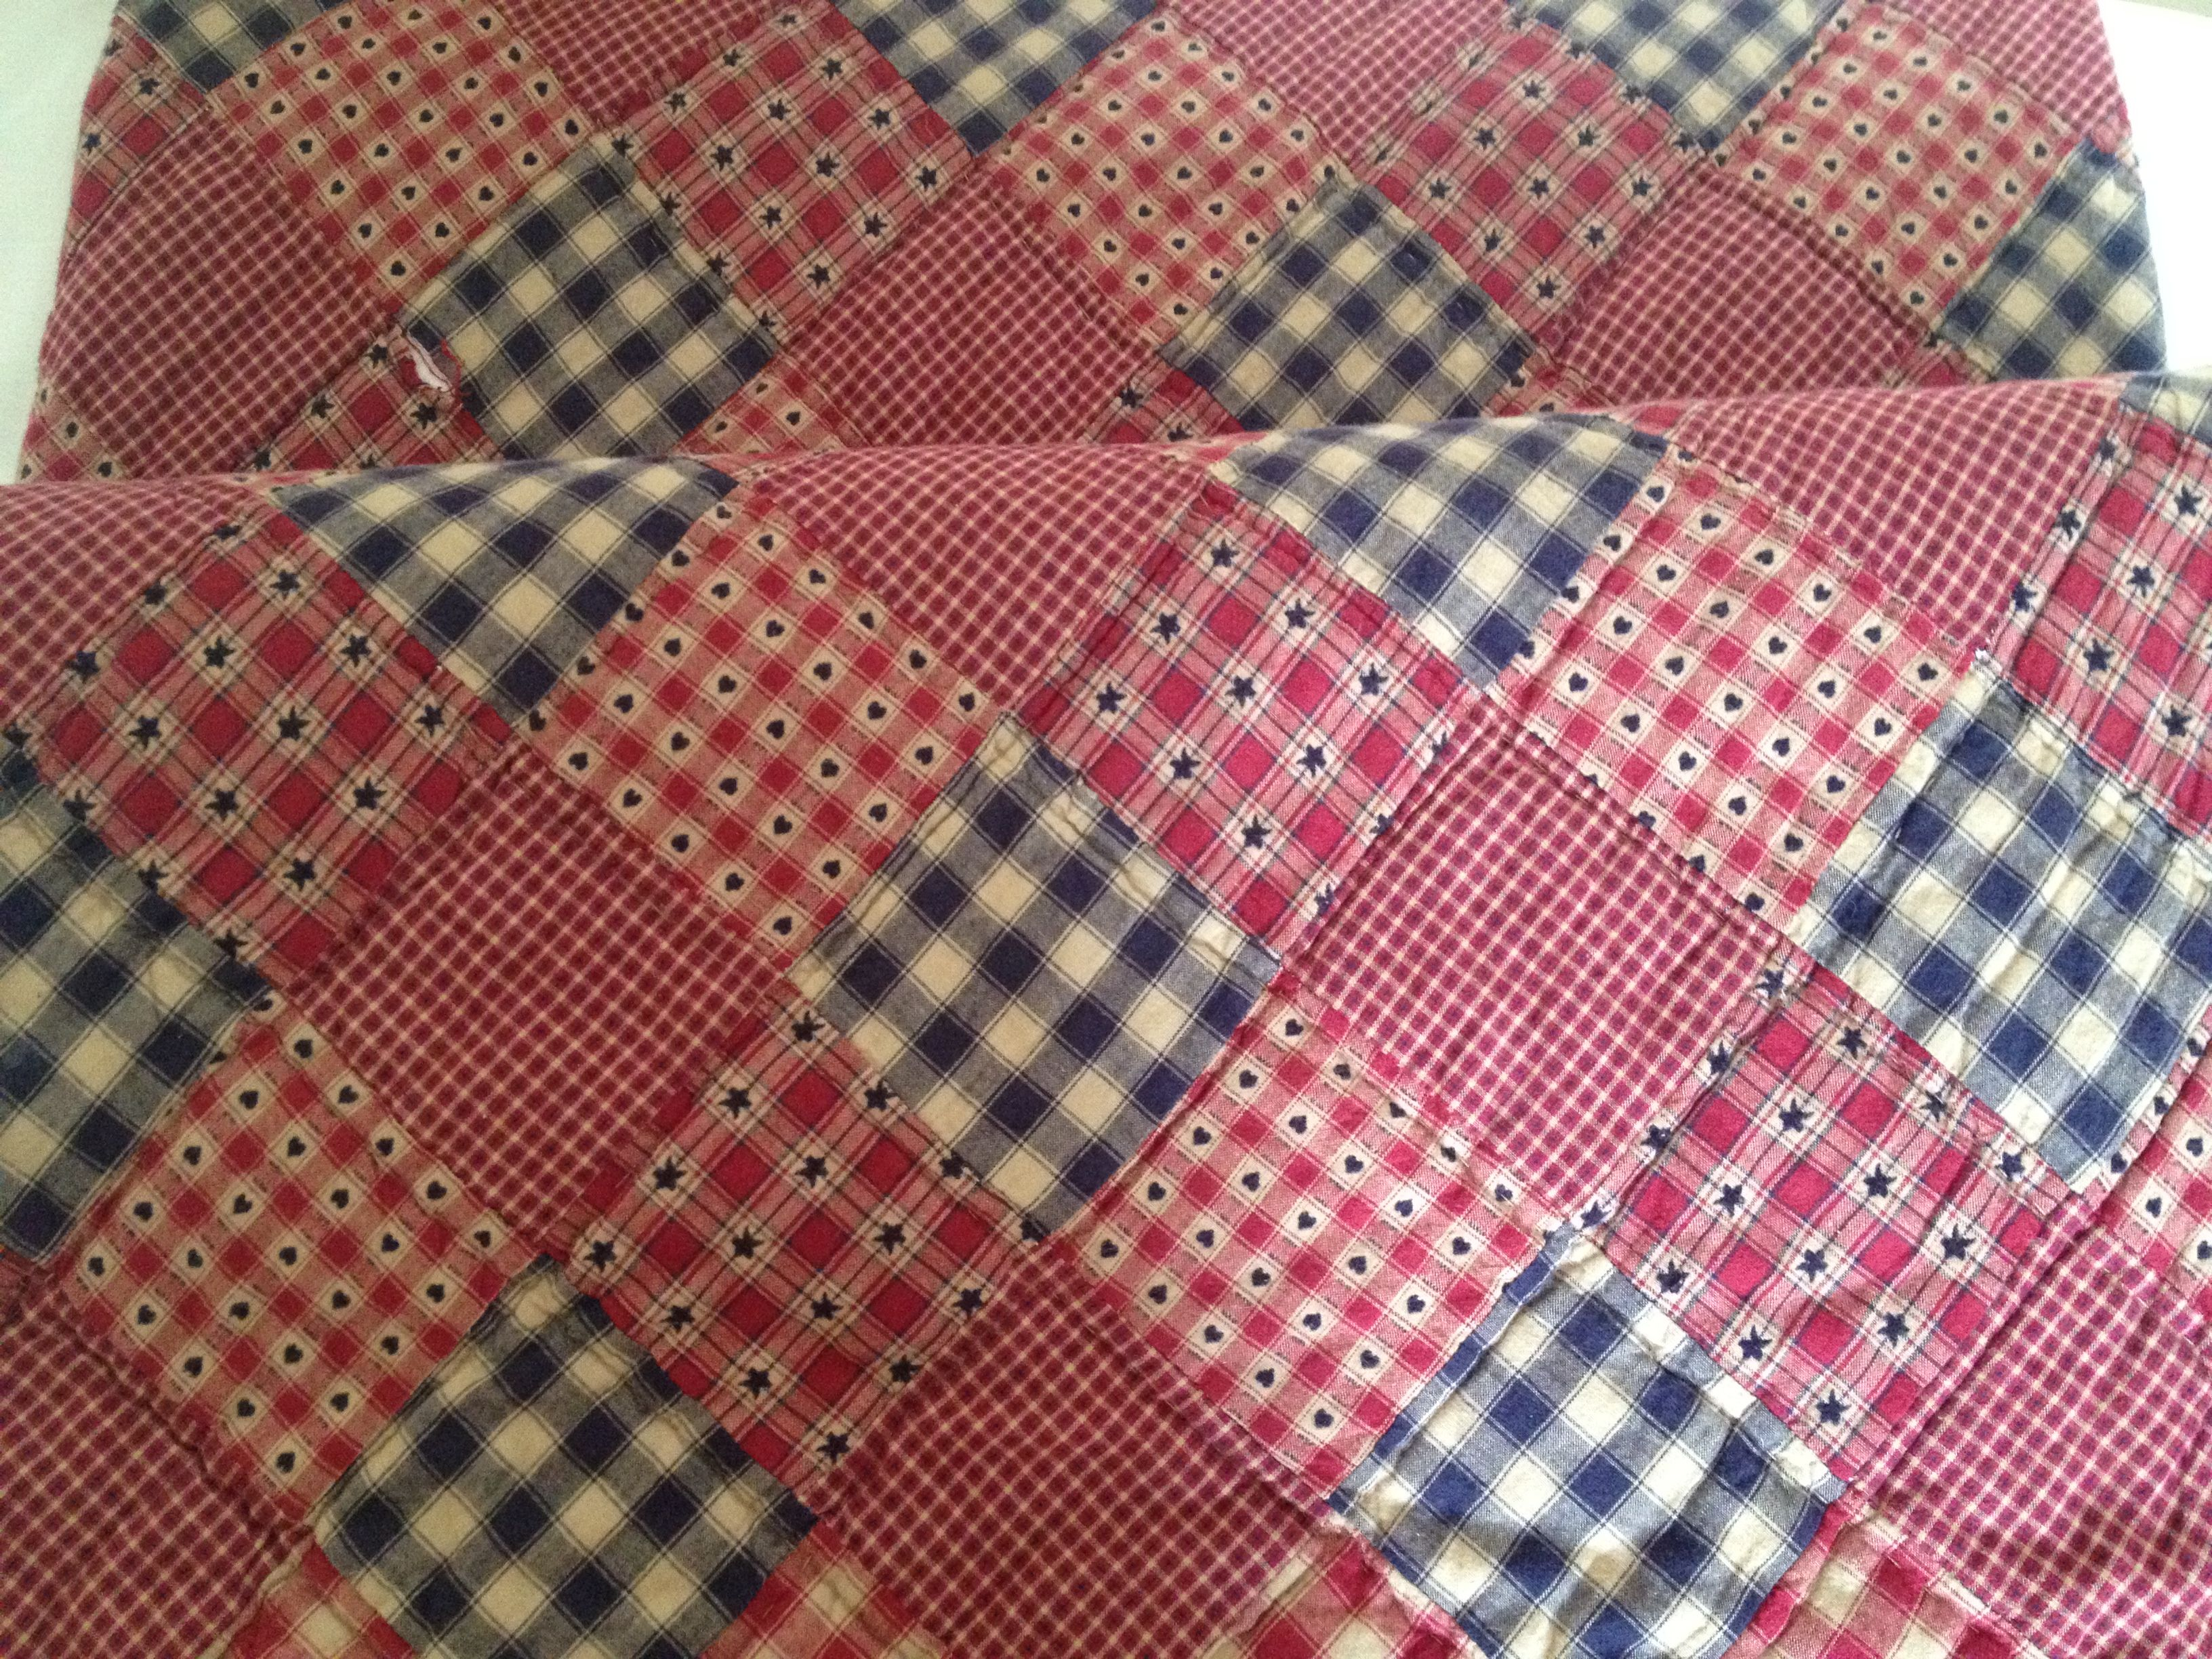 Red, white and blue quilt 1